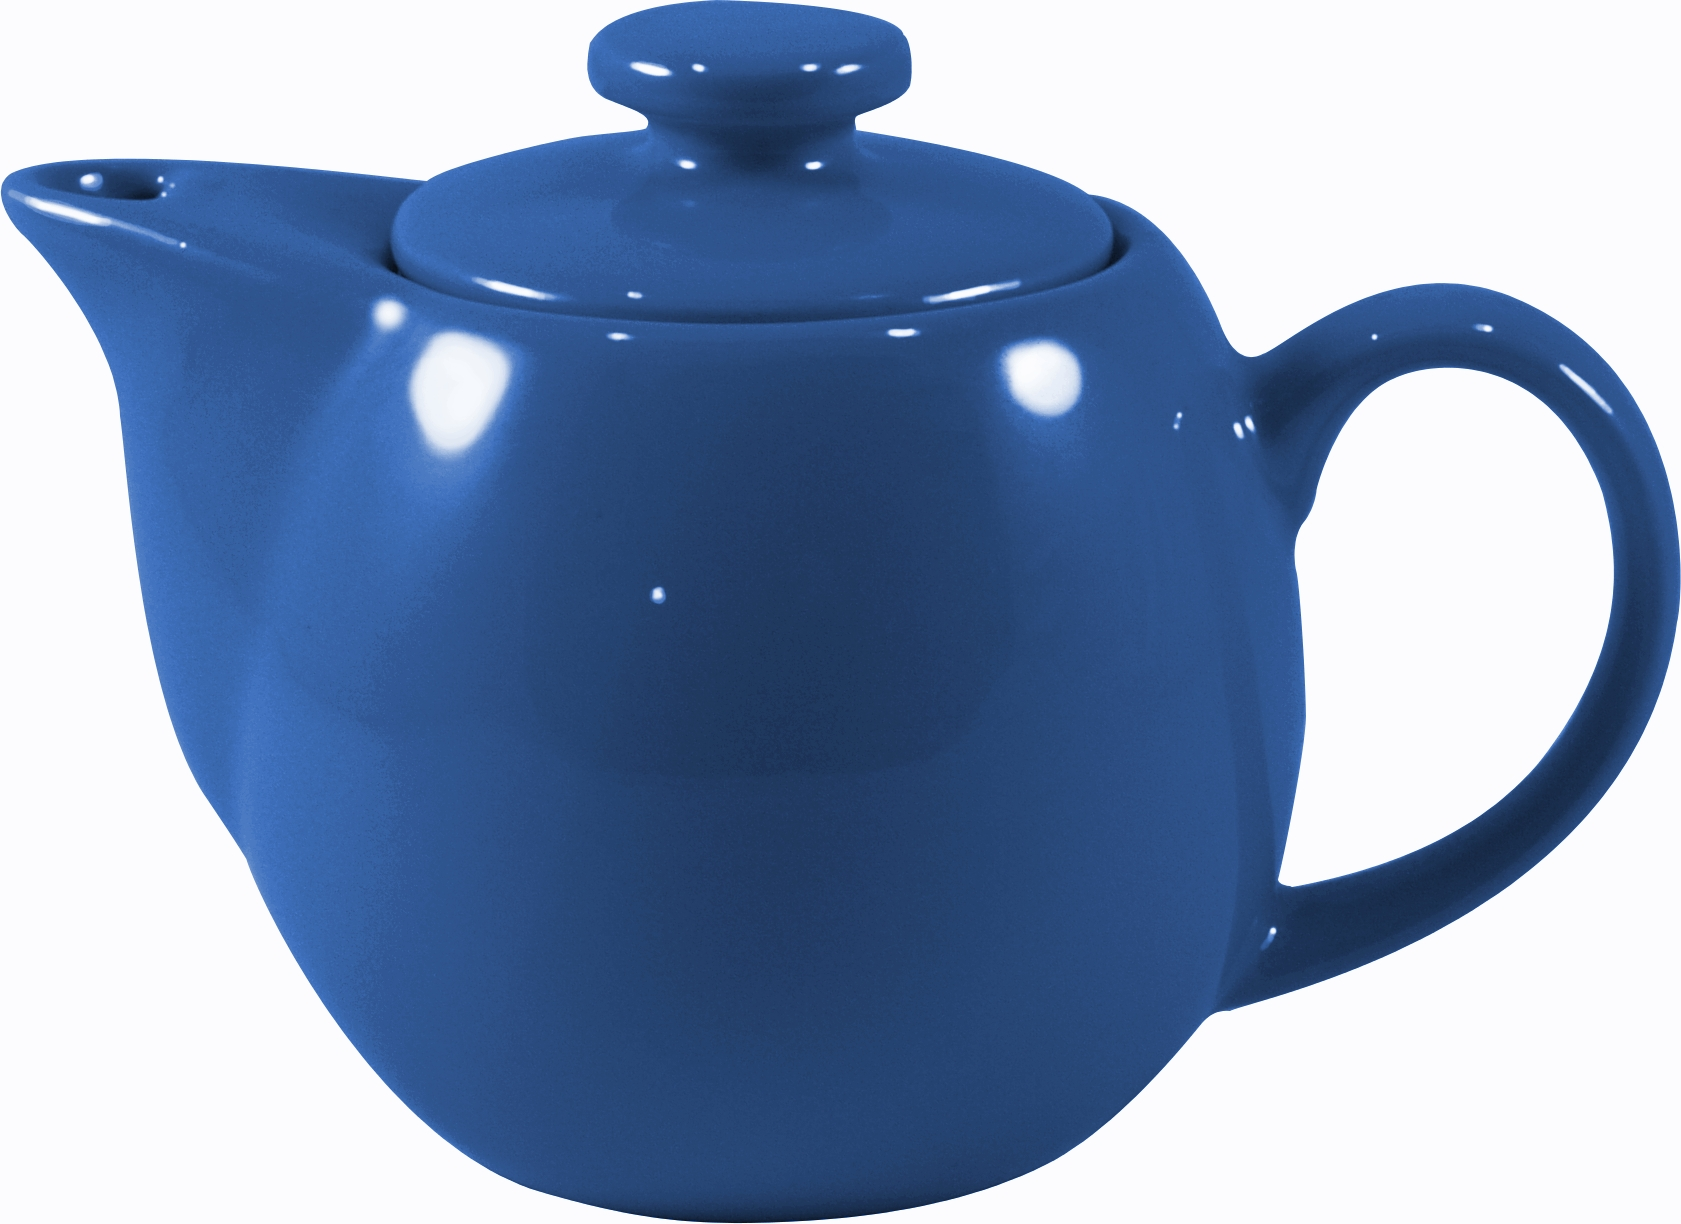 OmniWare Teaz Blue Stoneware 14 Ounce Teapot with Stainless Steel Mesh Infuser